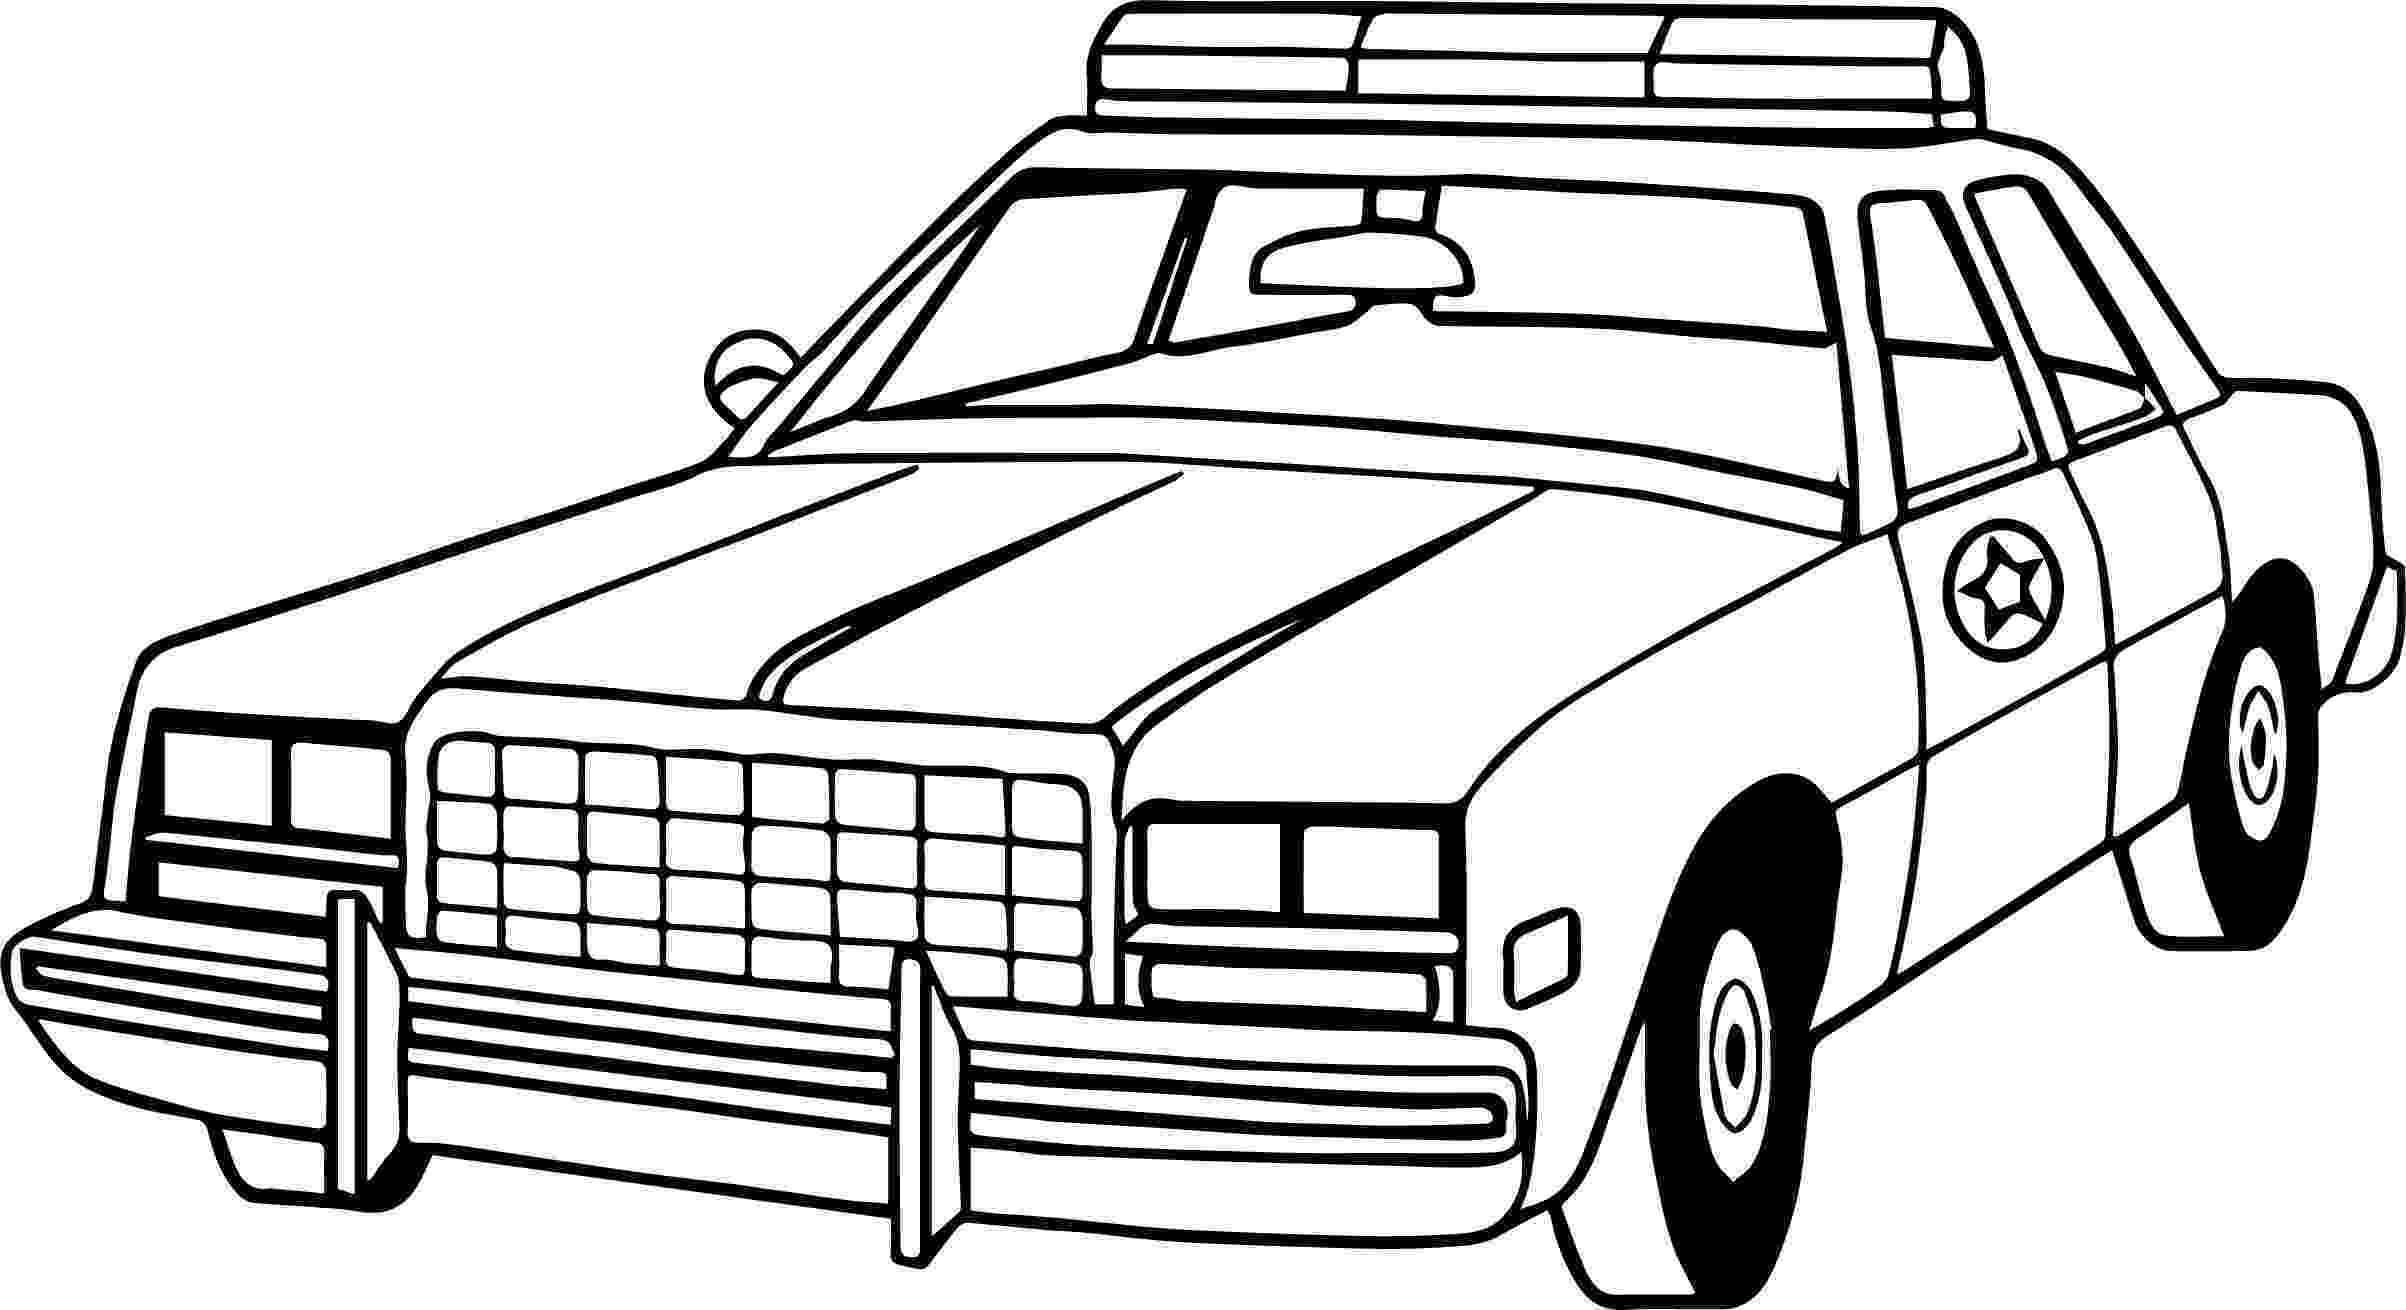 cop car coloring pages police car coloring pages download and print police car pages cop coloring car